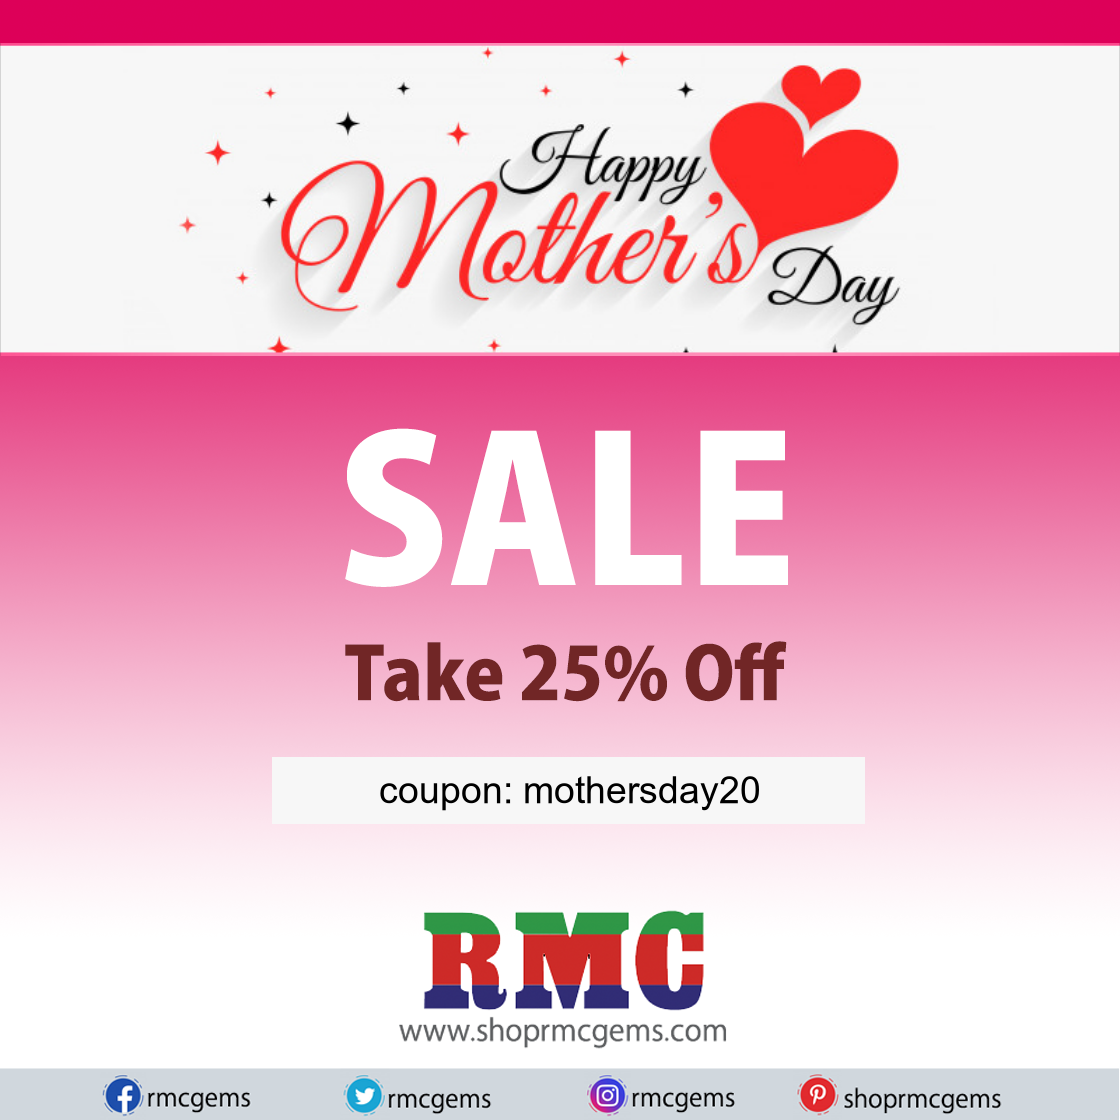 Mother's Day: Take 25% Off Select Gemstones